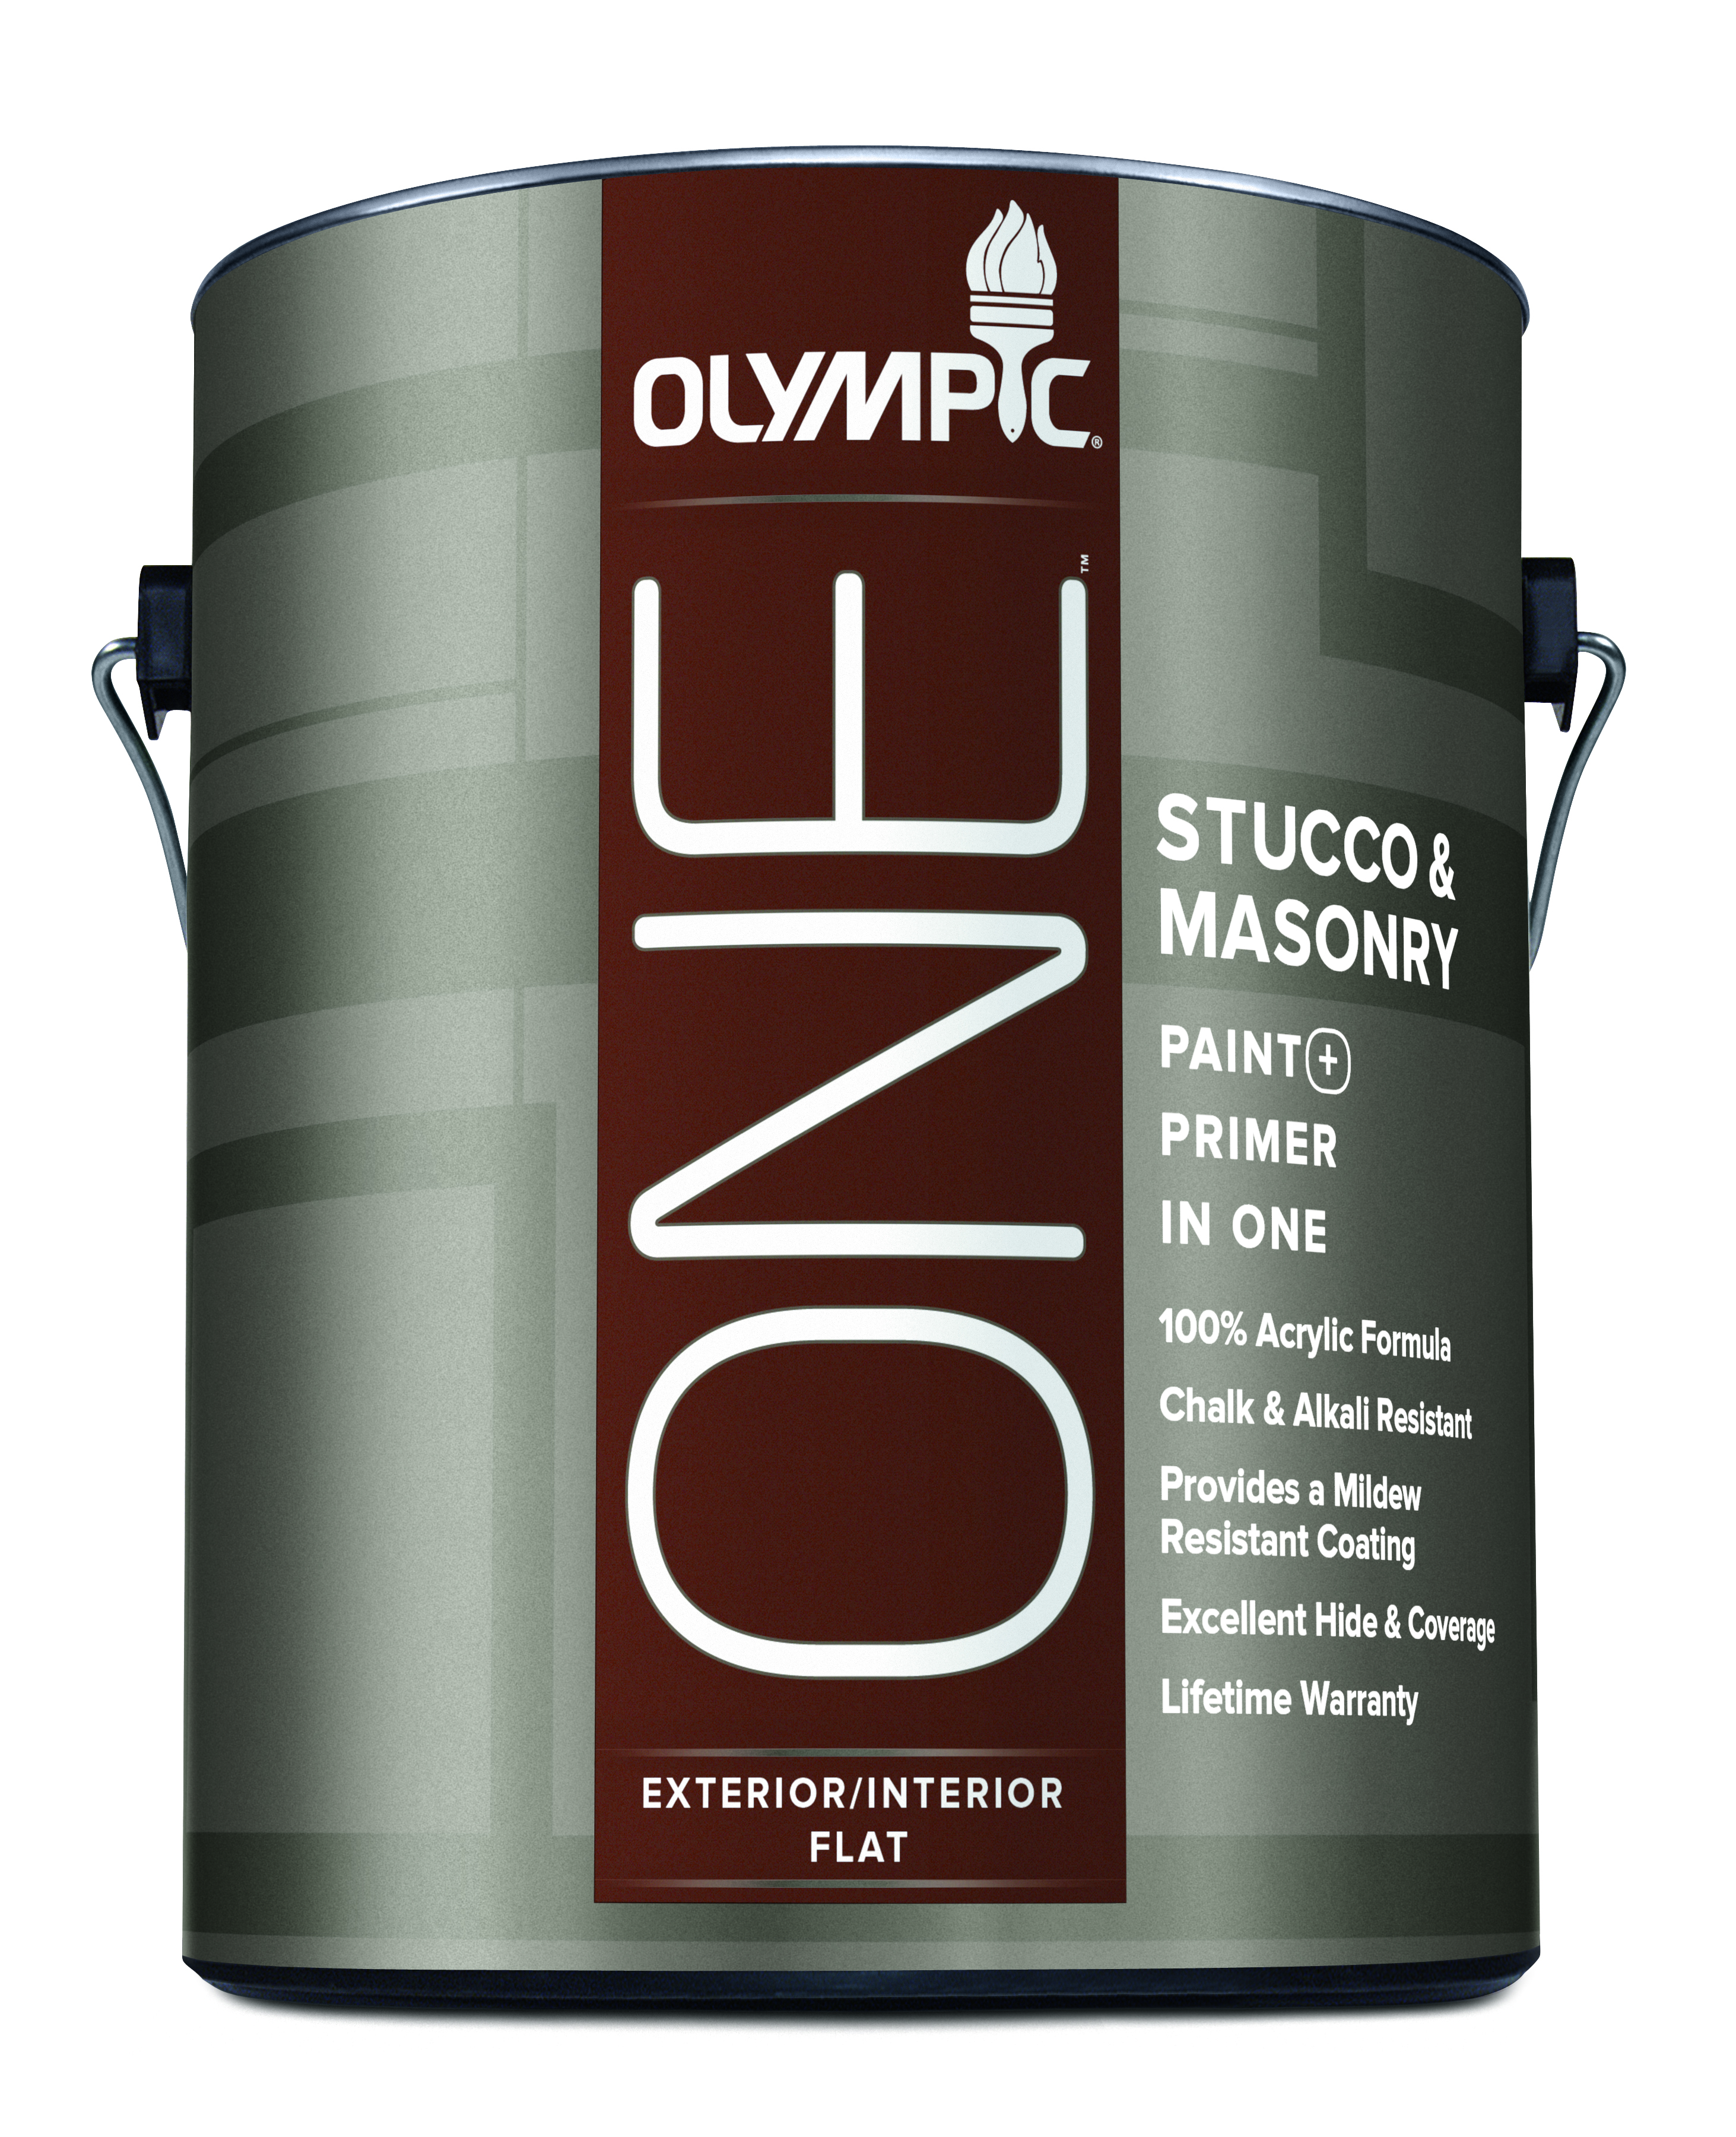 Cranberry Township Pa April 22 2017 Olympic Paint And Stain Announced Today The Launch Of One Stucco Masonry Primer In